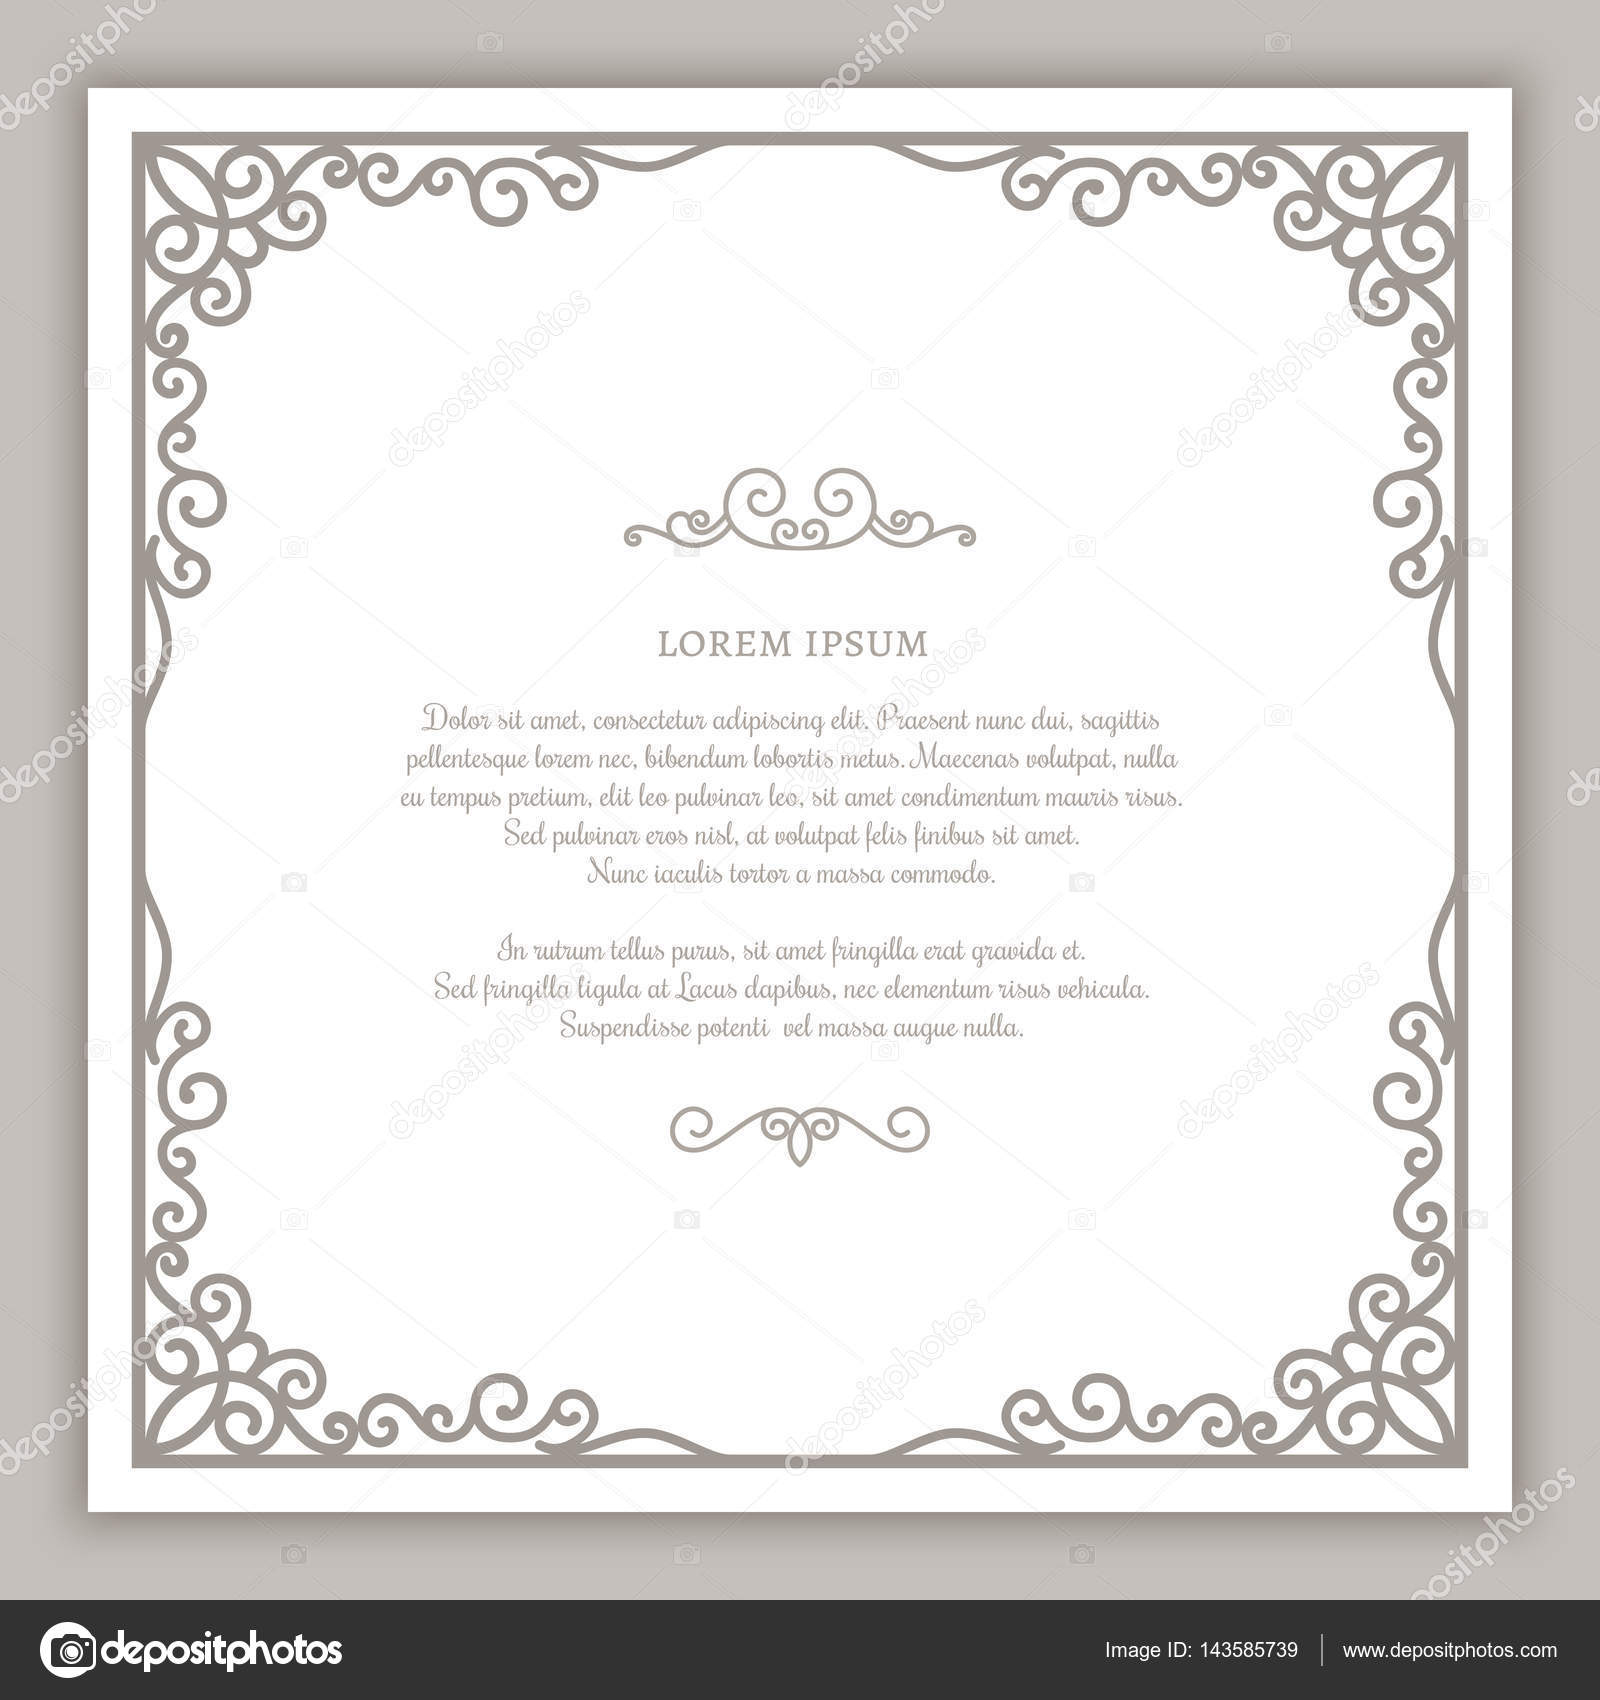 Vintage Square Frame With Swirly Corner Decoration Cutout Paper Vignette Greeting Card Or Wedding Invitation Template Vector By Magenta10